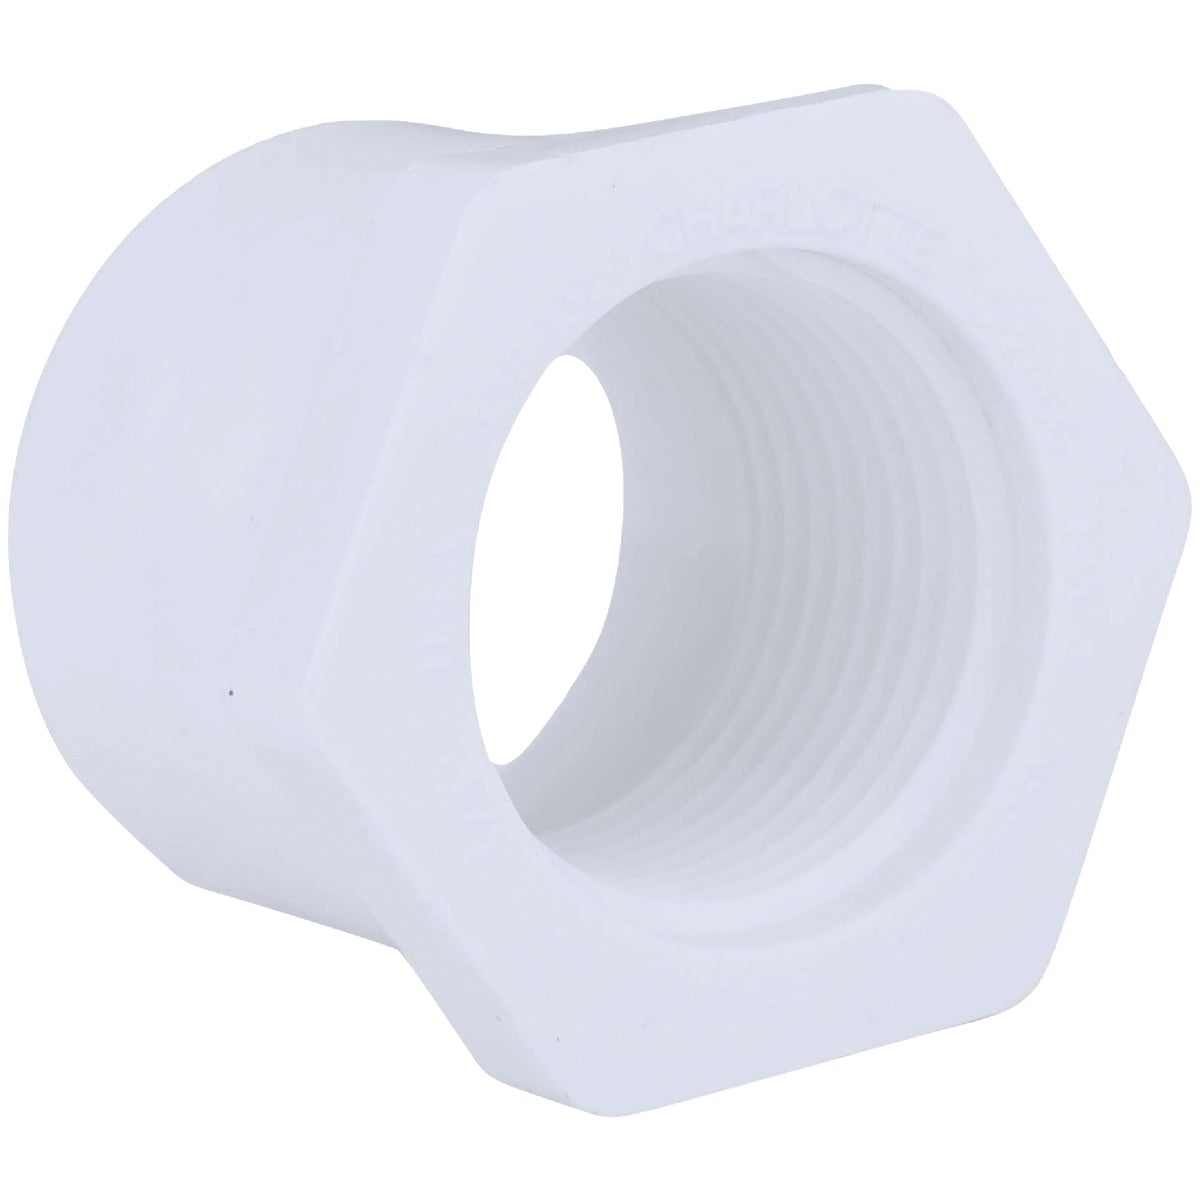 1X3/4 PVC SPXFIP BUSHING - 34217 by Genova Inc